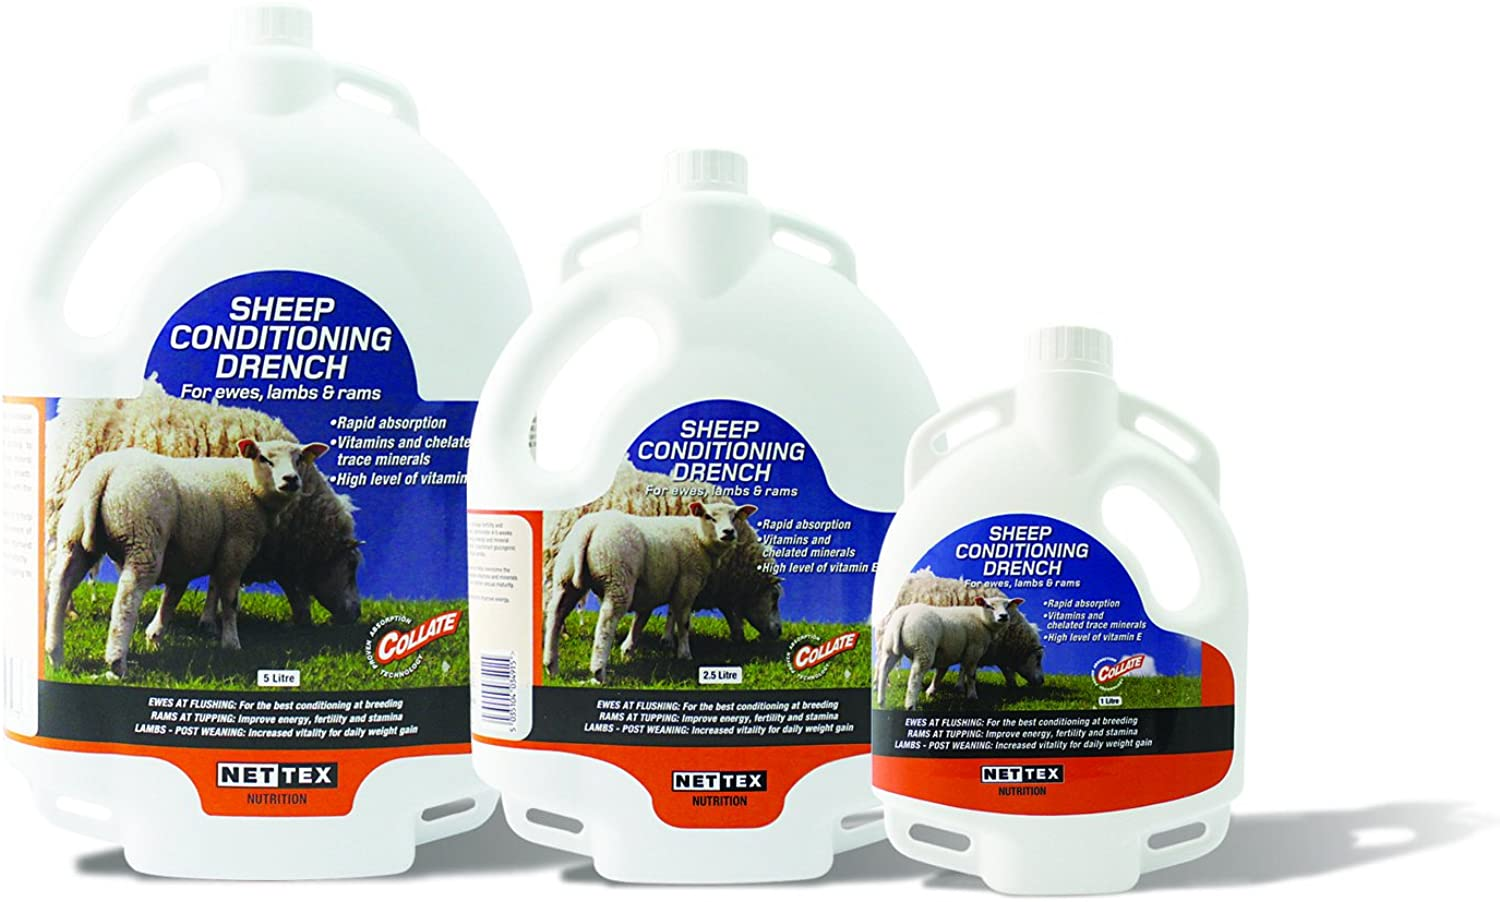 NetSheep Conditioning Drench  2.5 Litre